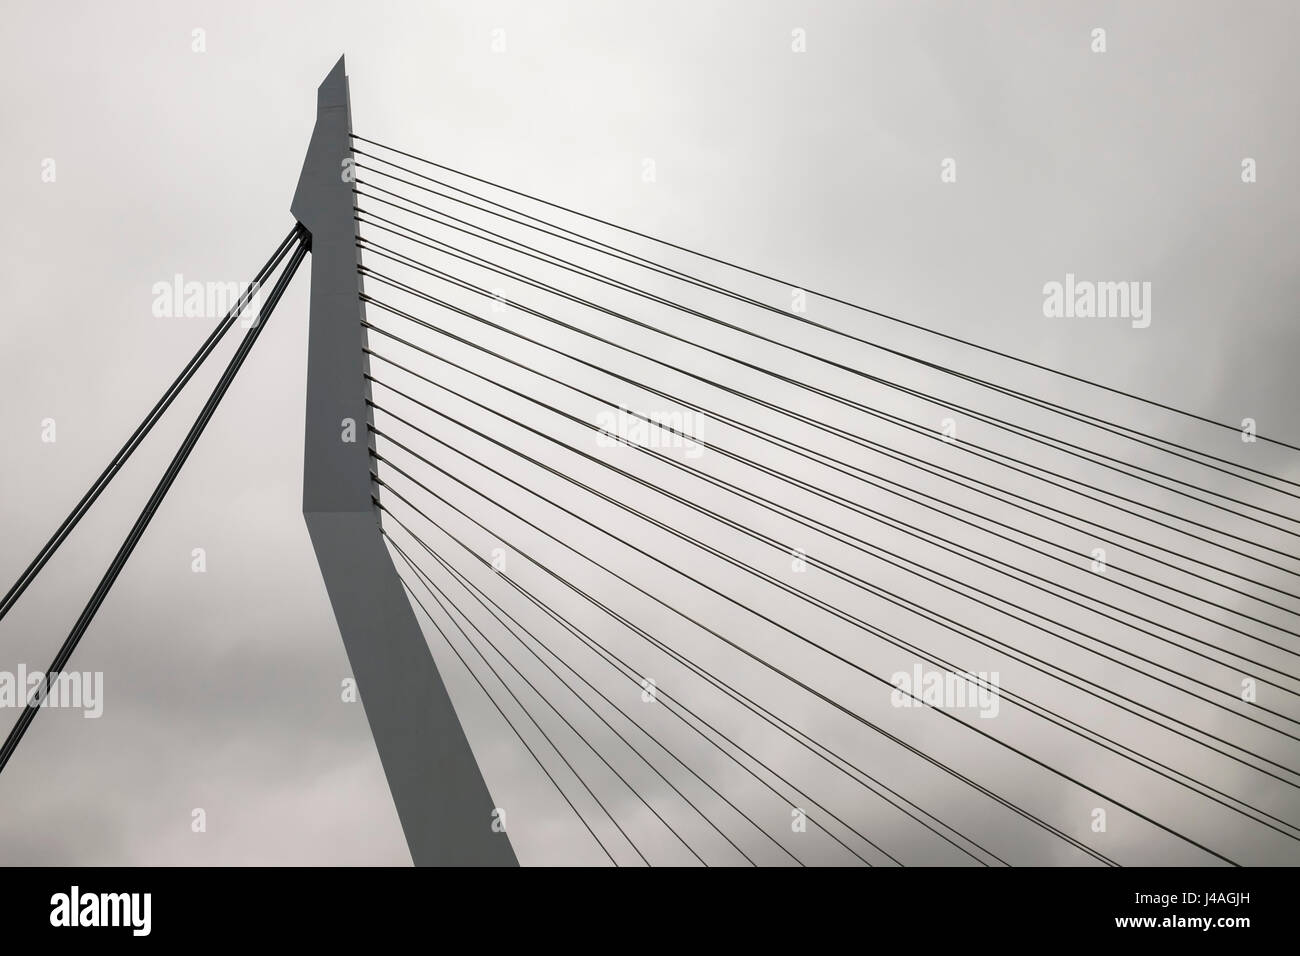 A section of Erasmusbrug, a prominent architectural feature of the Rotterdam city skyline, The Netherlands. - Stock Image